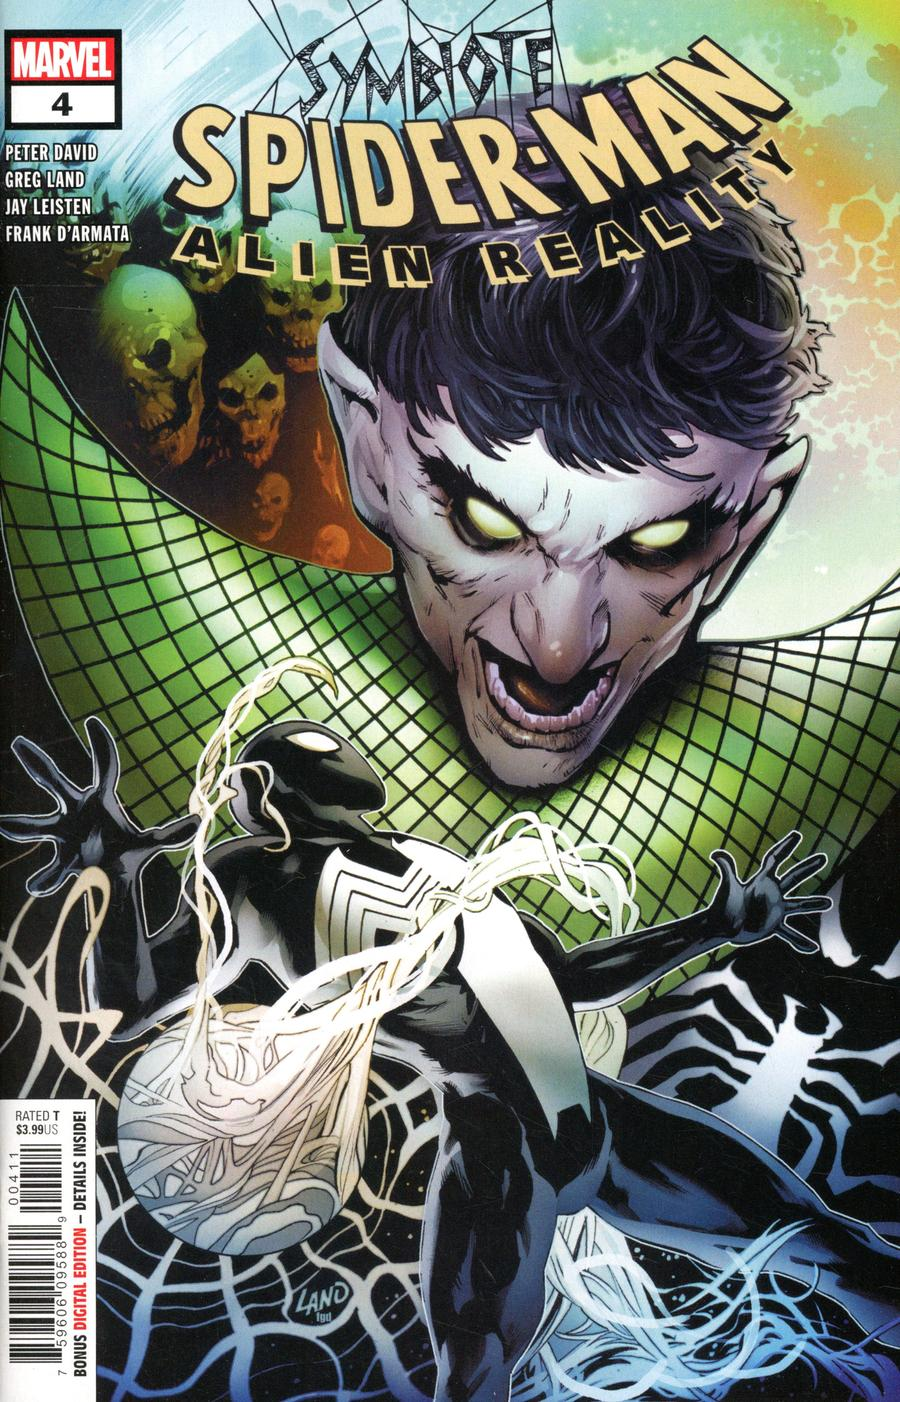 Symbiote Spider-Man Alien Reality #4 Cover A Regular Greg Land Cover